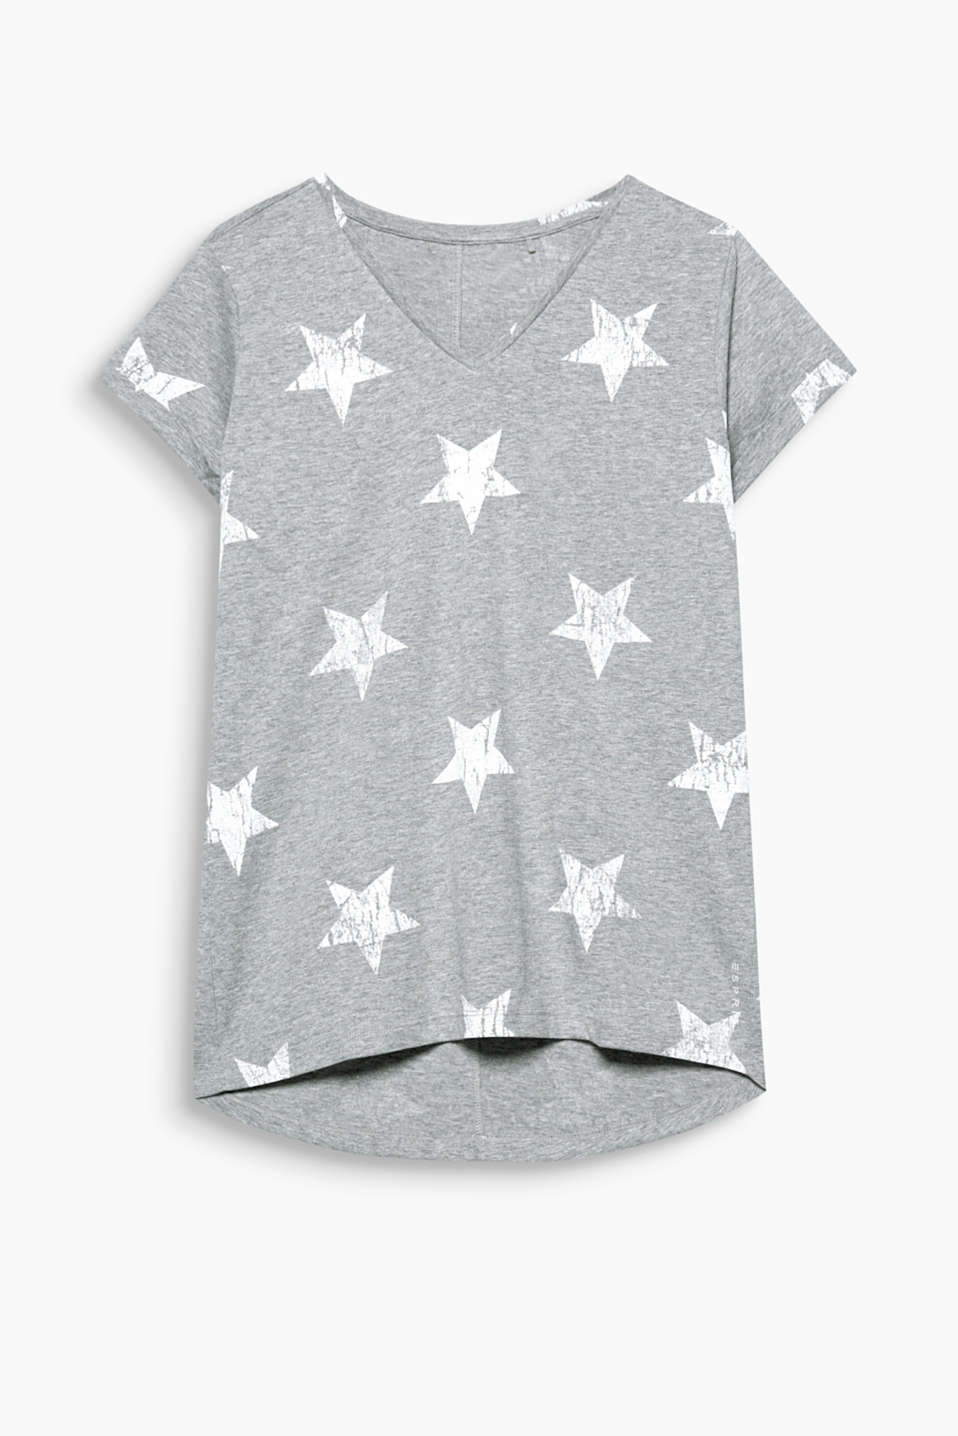 Melange T-shirt with star print, cotton blend